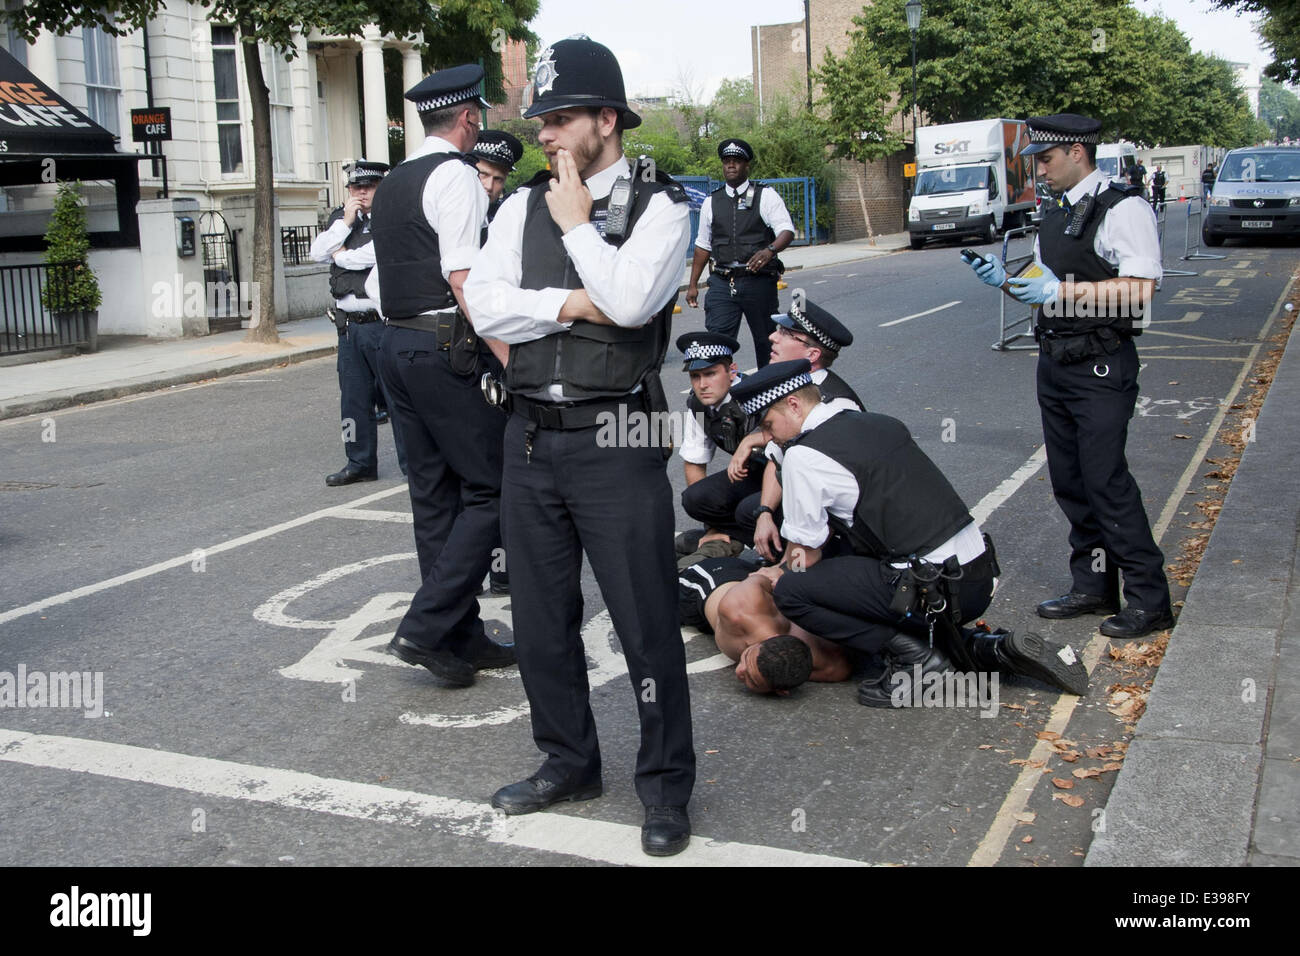 Detaining  >> Notting Hill Carnival 2013 London Uk 26 08 13 Police Officers